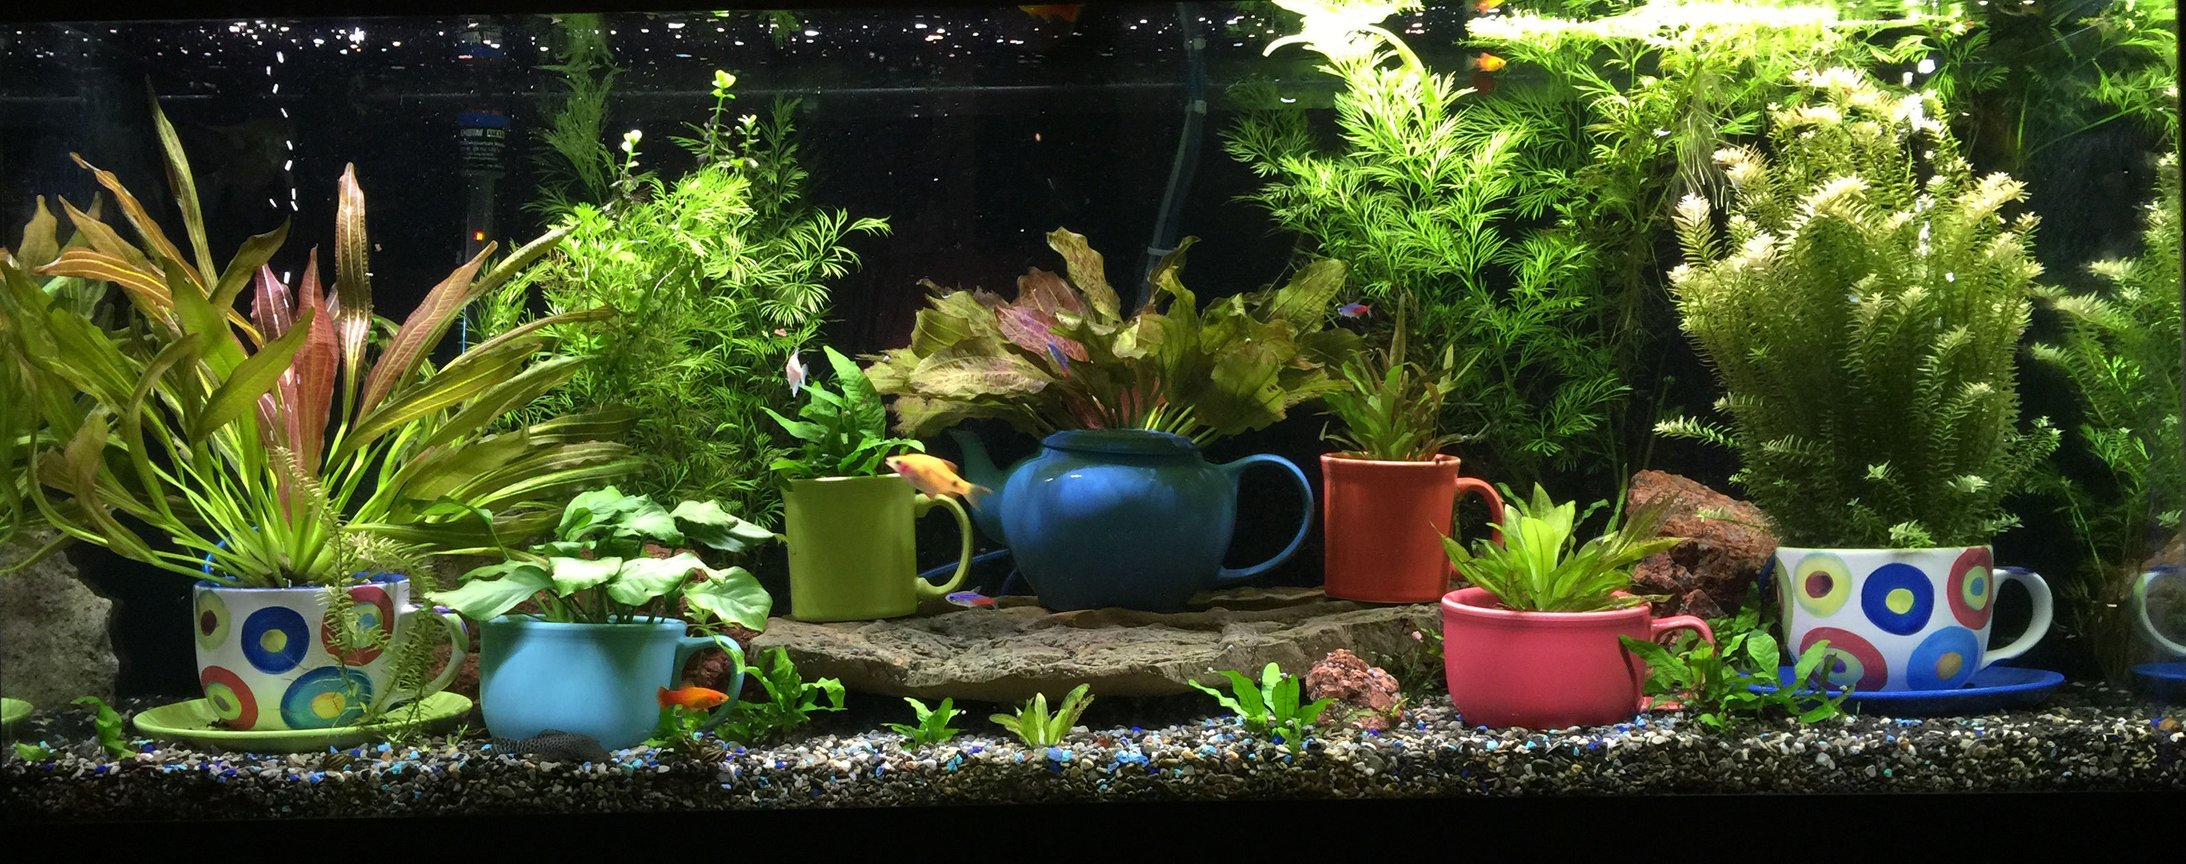 72 gallons planted tank (mostly live plants and fish) - This is my 75-gallon freshwater planted aquarium. Located in my living room, on display next to my mug collection. It's been running for 8 months or so. Enjoy and thank you!